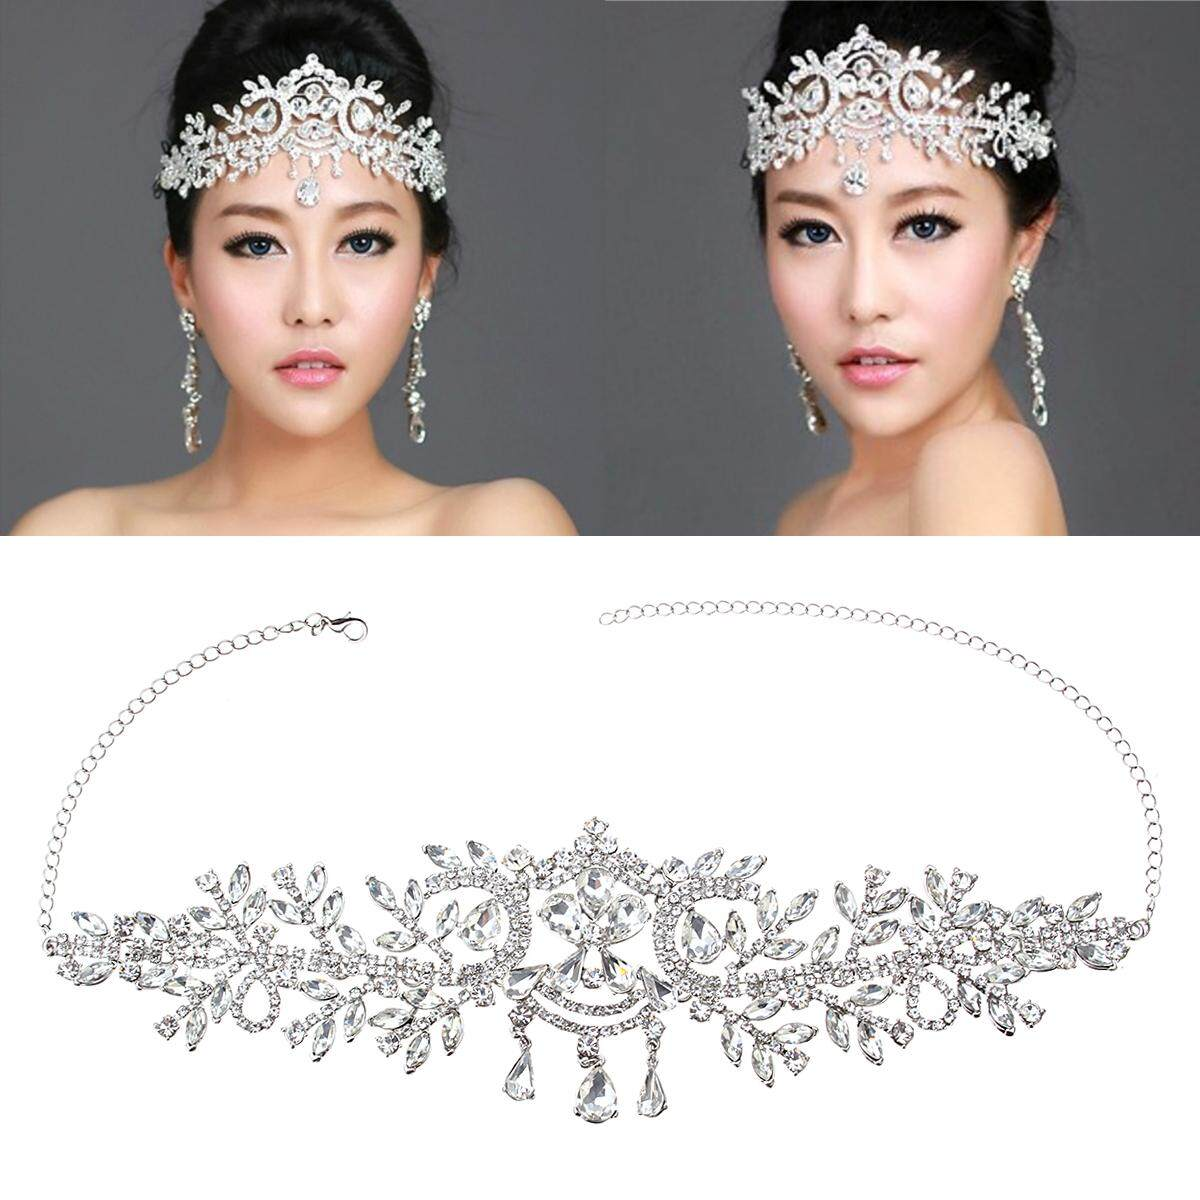 Bride Diamond Silver Crystal Crown Wedding Bridal Tiara Rhinestone Pageant Prom Veil Headband By Glimmer.